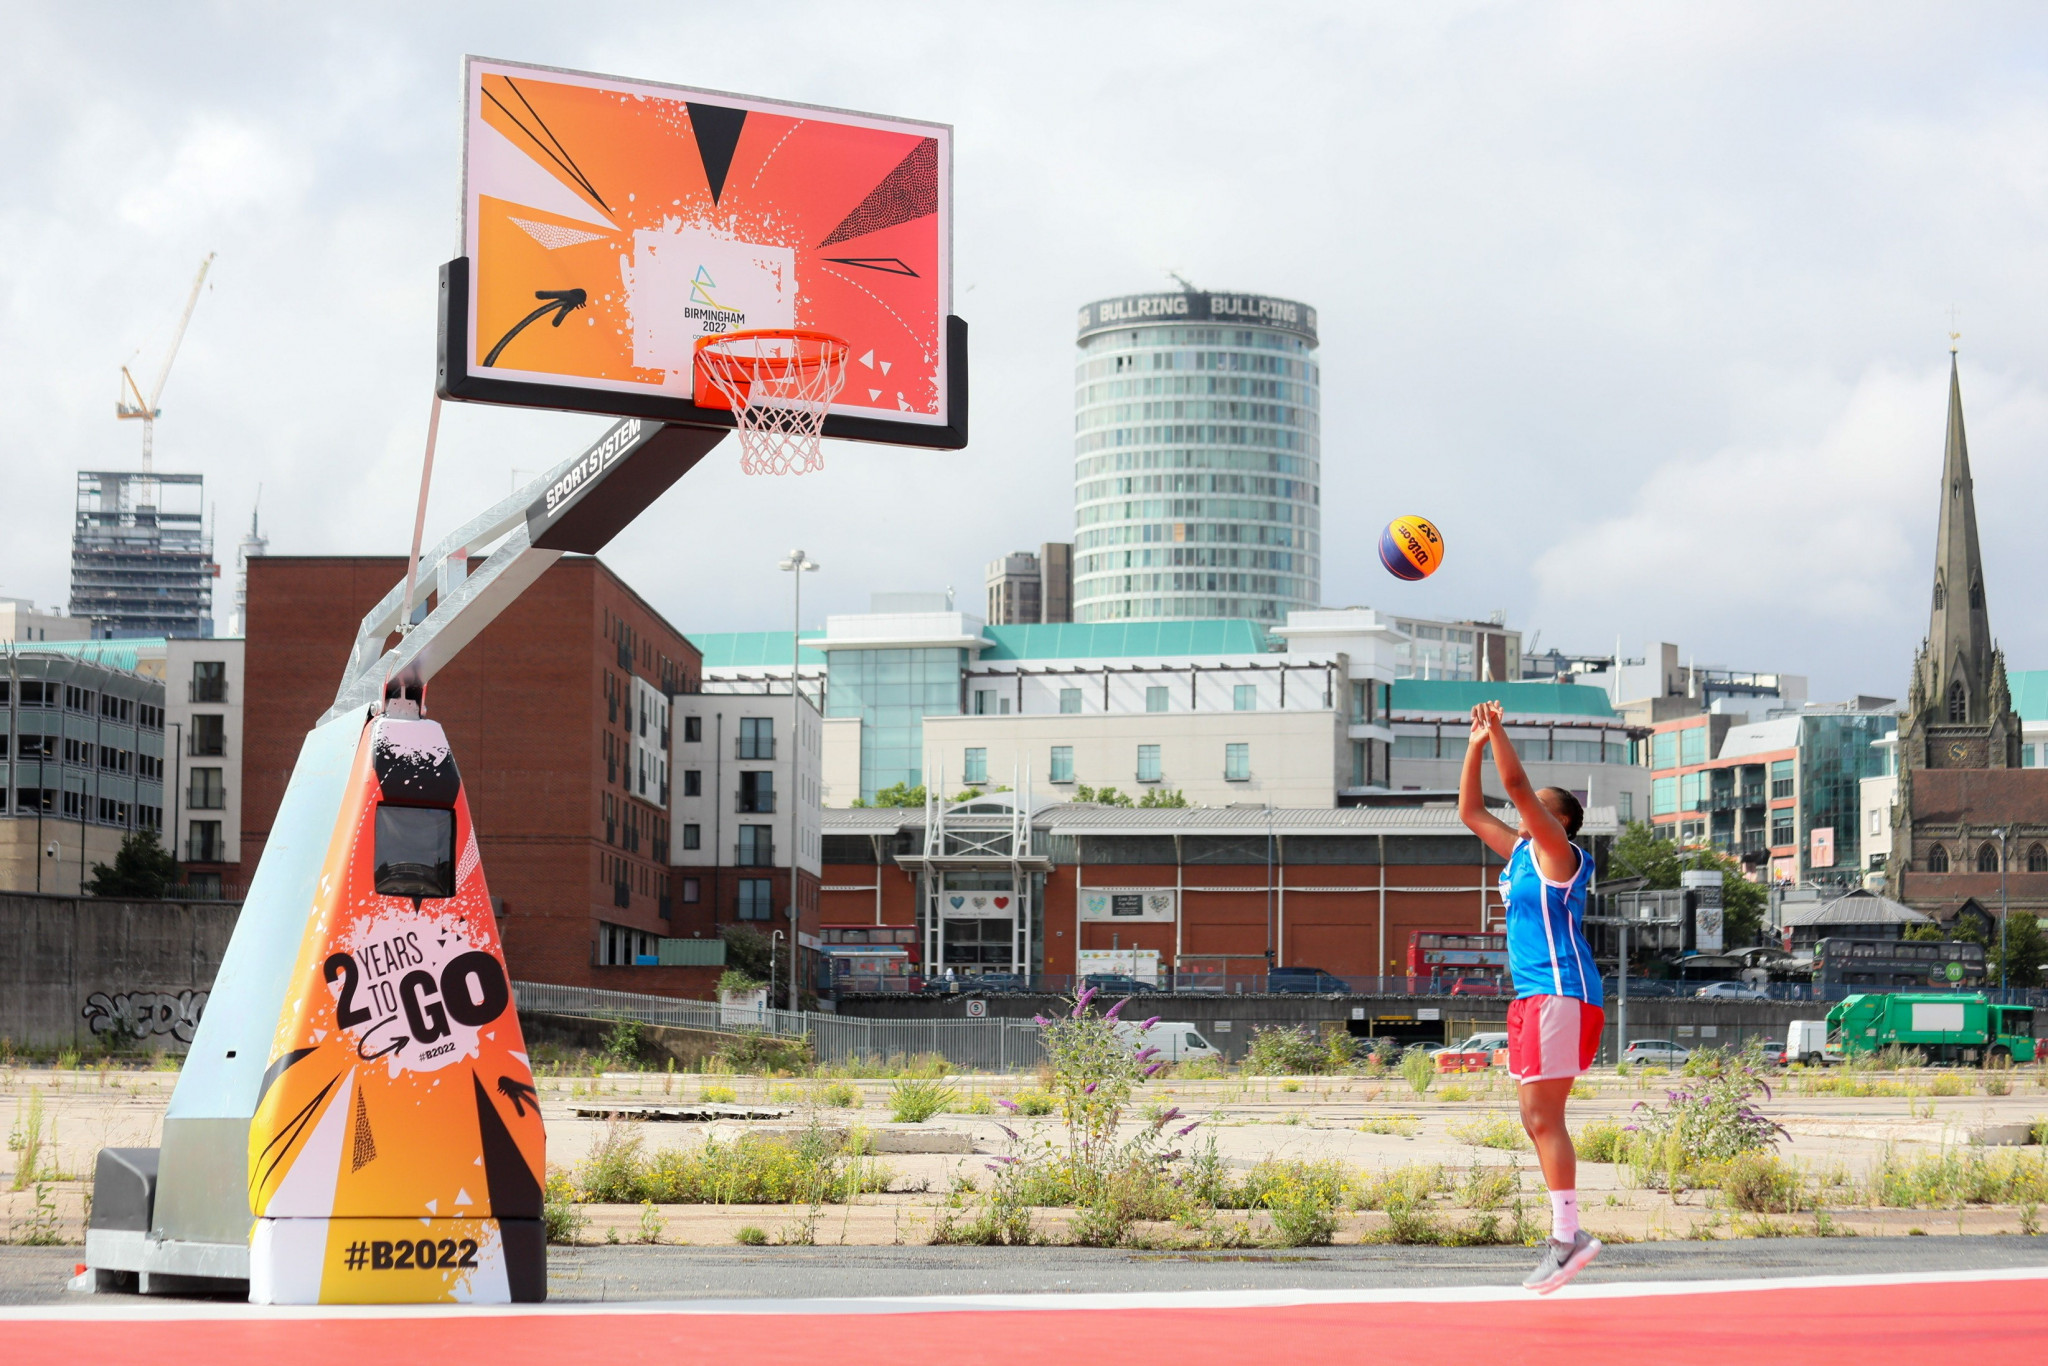 Advertising and trading will be restricted in and around locations set to be used for the Birmingham 2022 Commonwealth Games ©Birmingham 2022